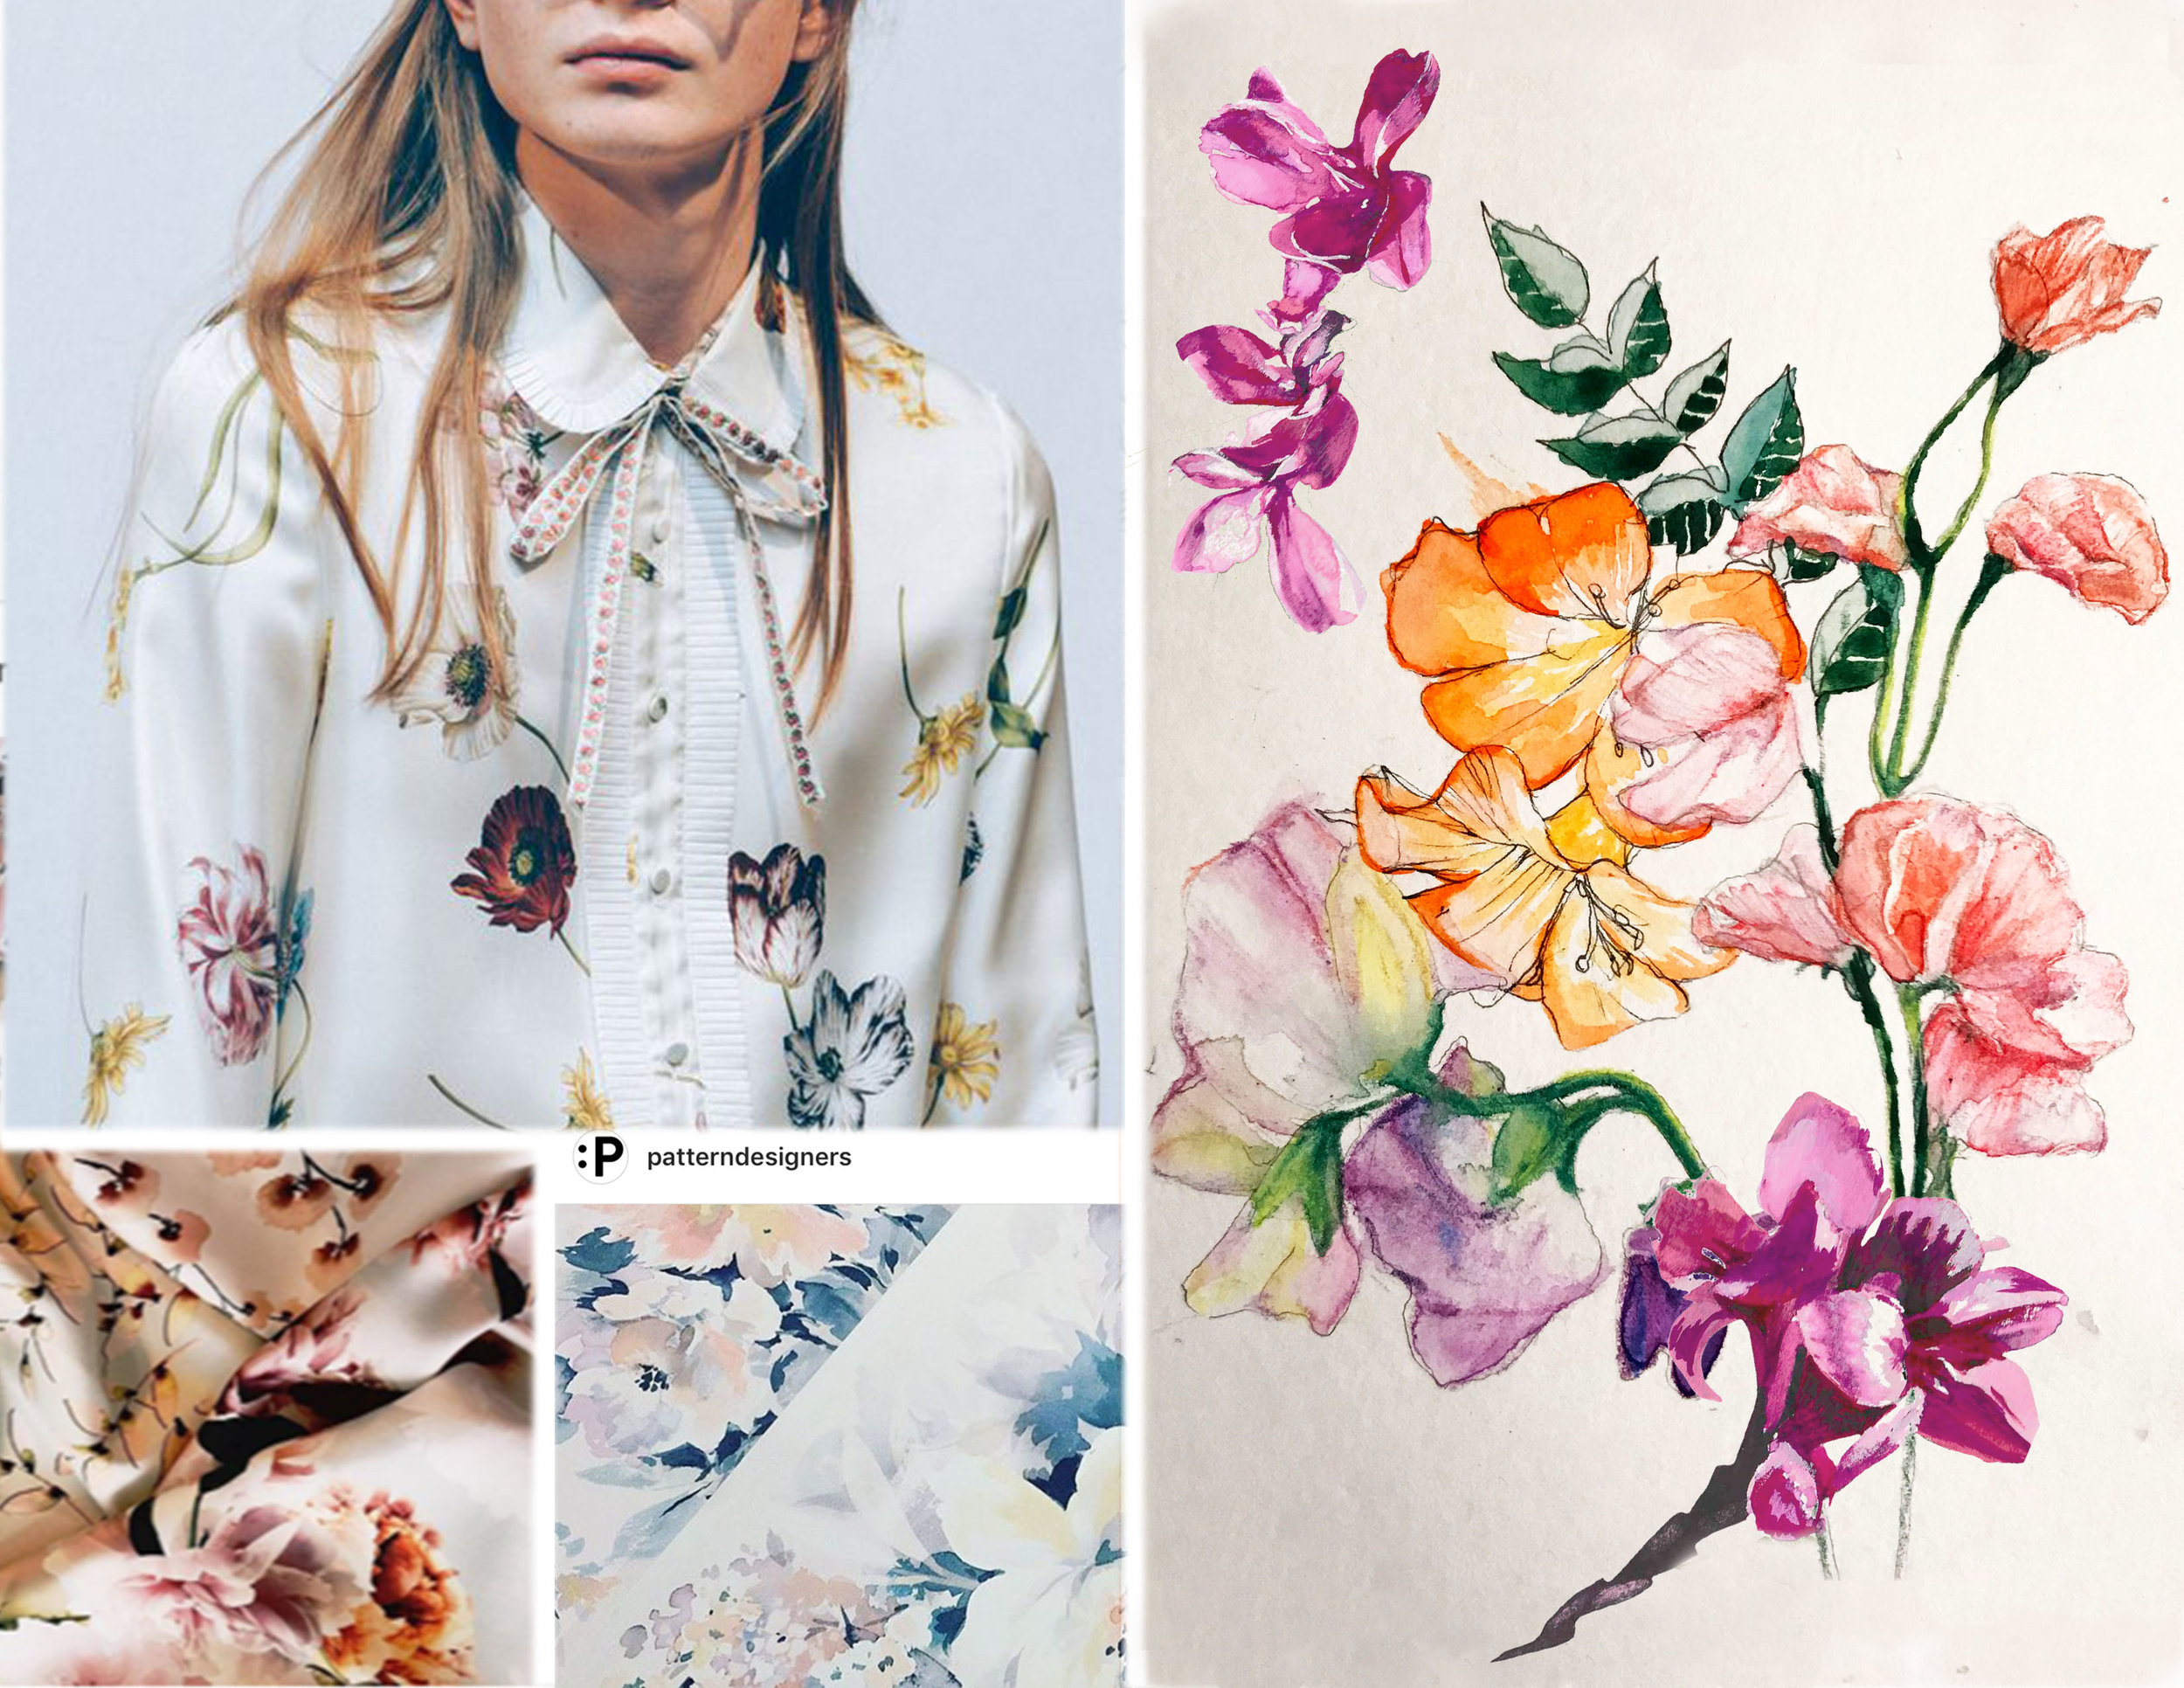 waterfcolor florals.jpg